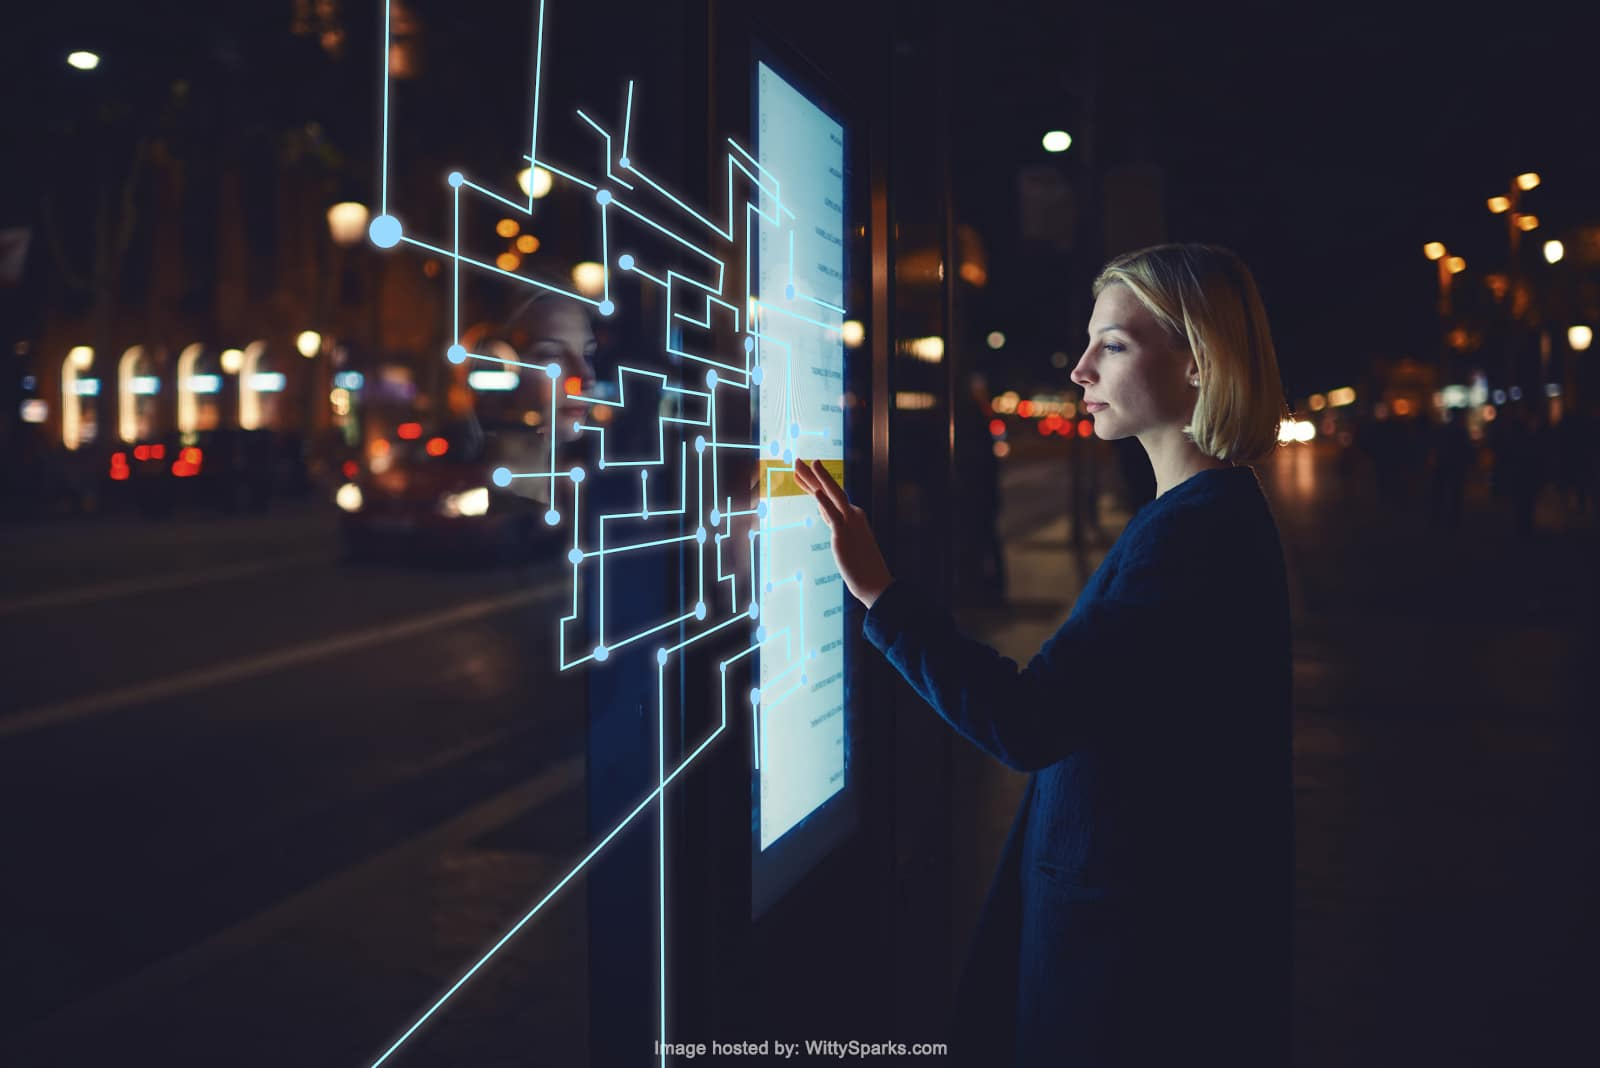 How does Augmented Reality work